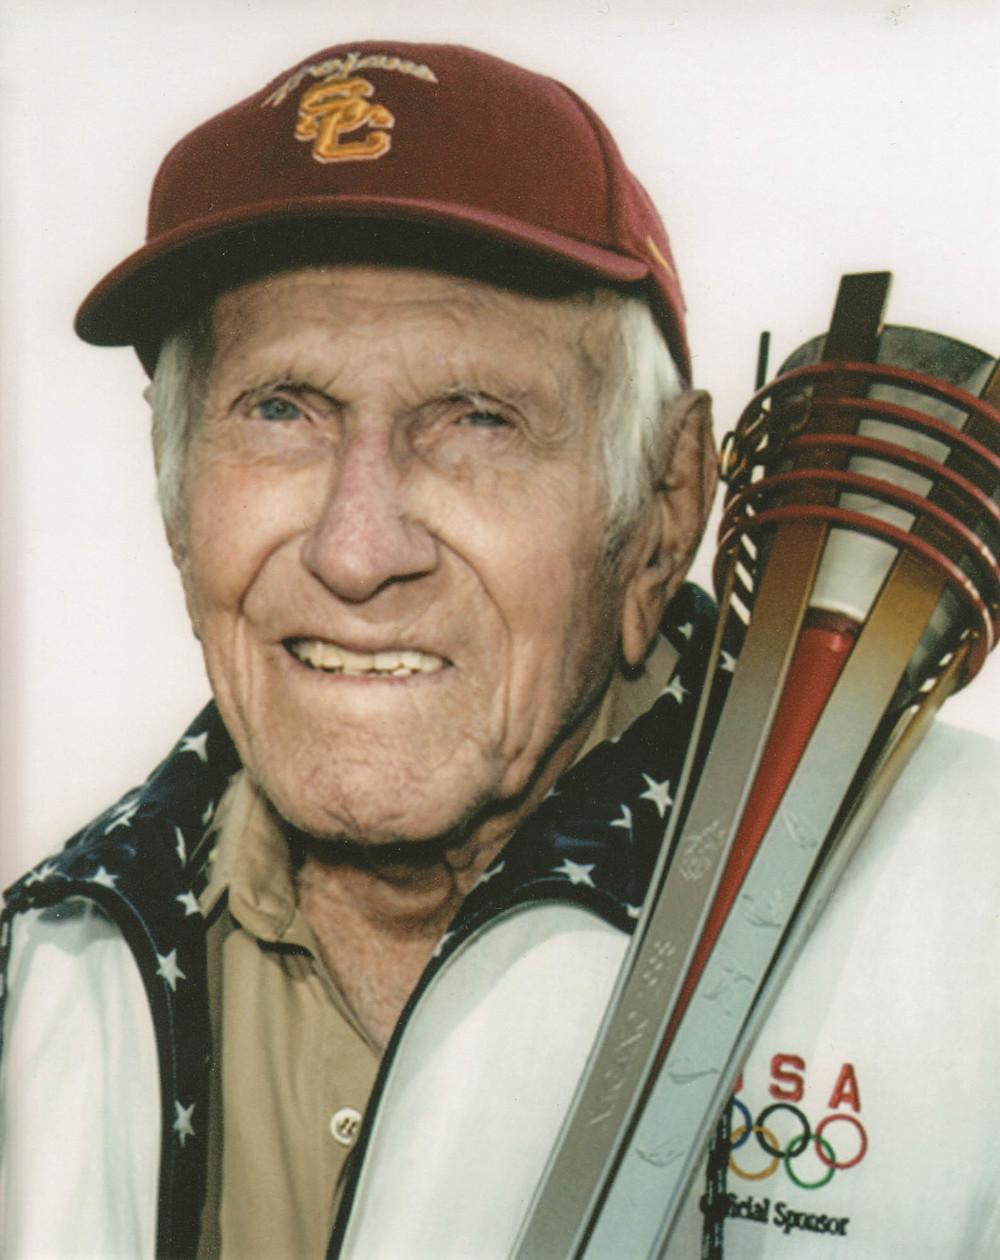 Louis Zamperini holding the Olympic torch he carried in the 1998 Nagano Winter Olympics.